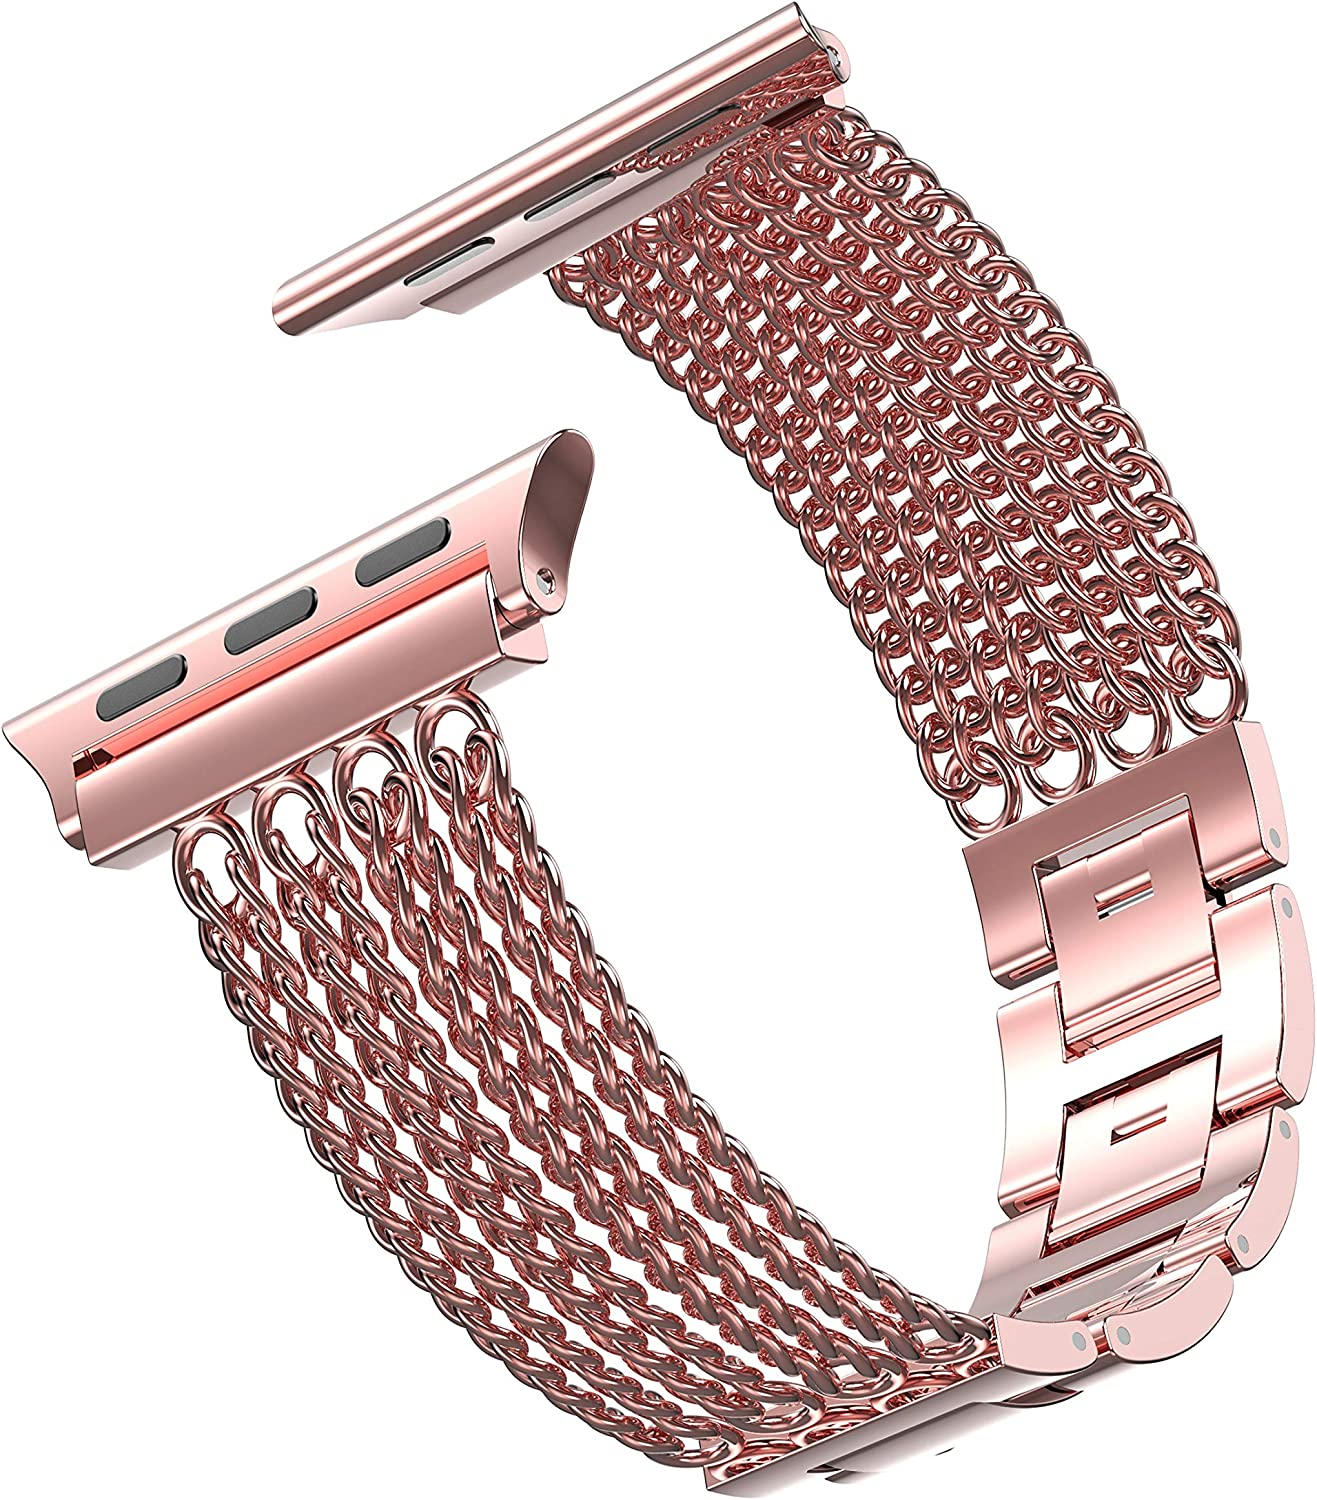 Anoxin Compatible with Apple Watch Band 38mm 40mm for Women Stainless Steel Chain Bracelet Replacement Strap iWatch Band for Apple Watch Series SE/6/5/4/3/2/1 (42mm/44mm,Rose Gold)